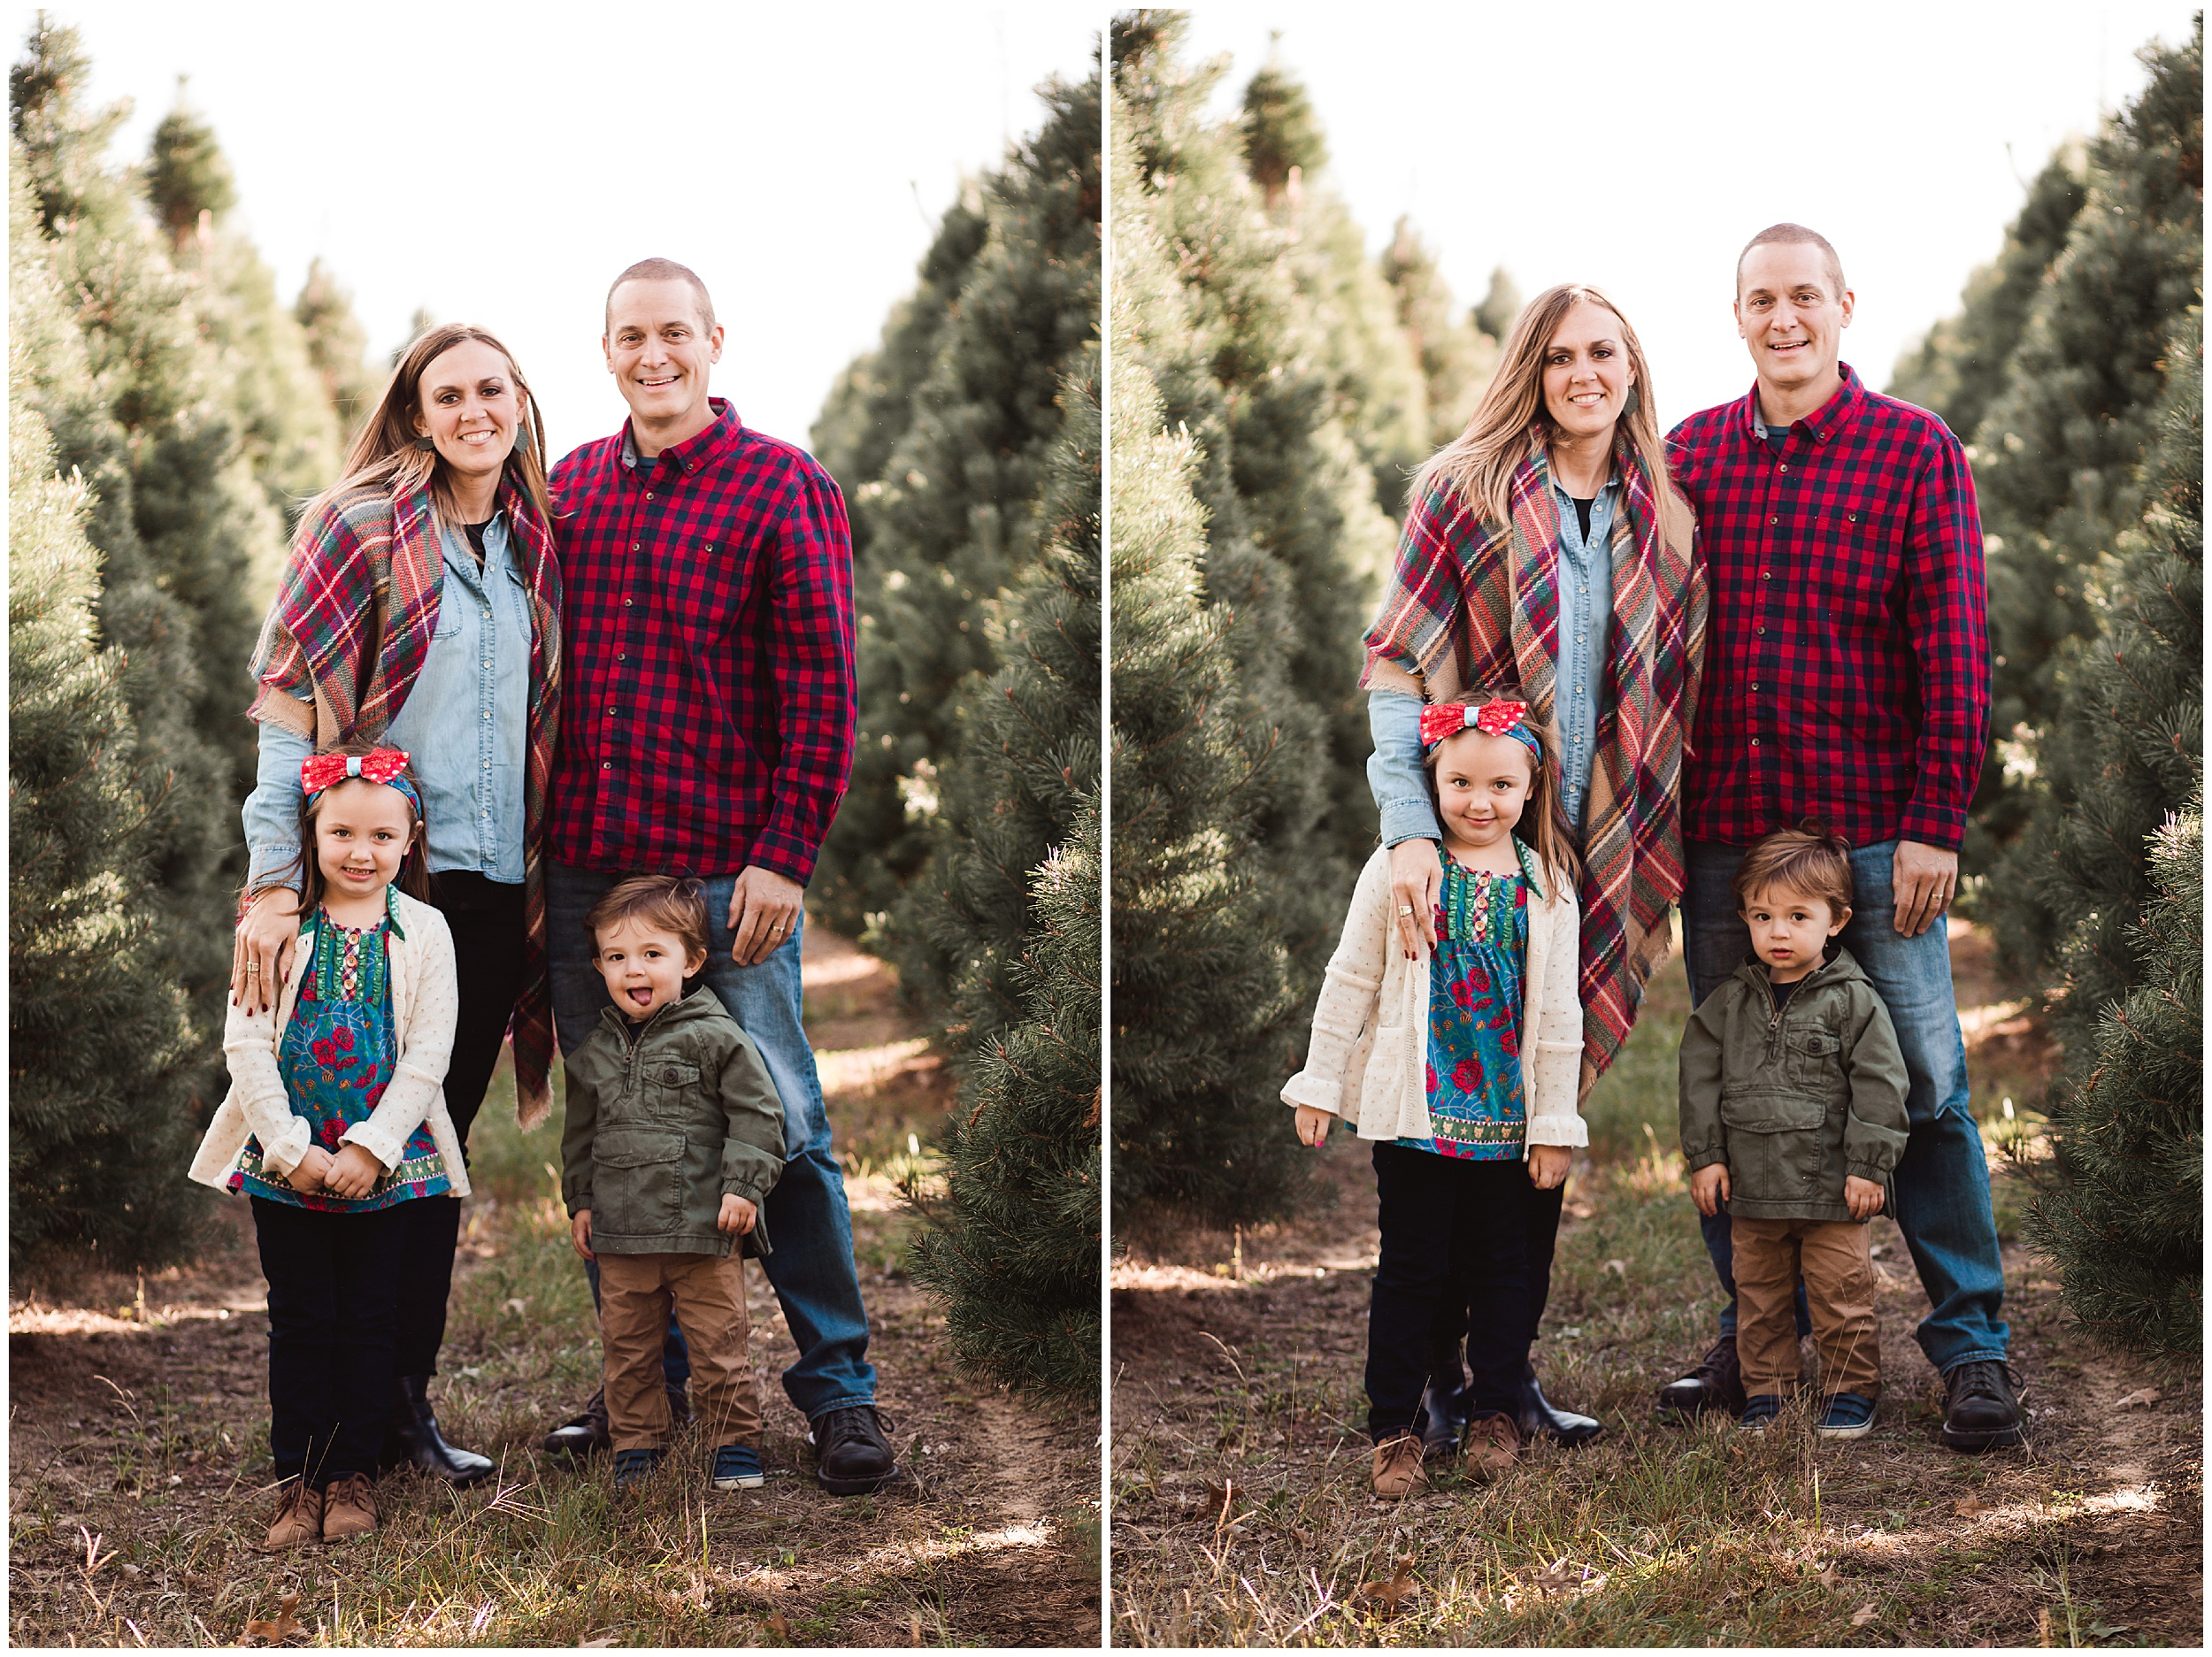 Indianapolis Family Photographer_Kelli White Photography_IG_0224.jpg